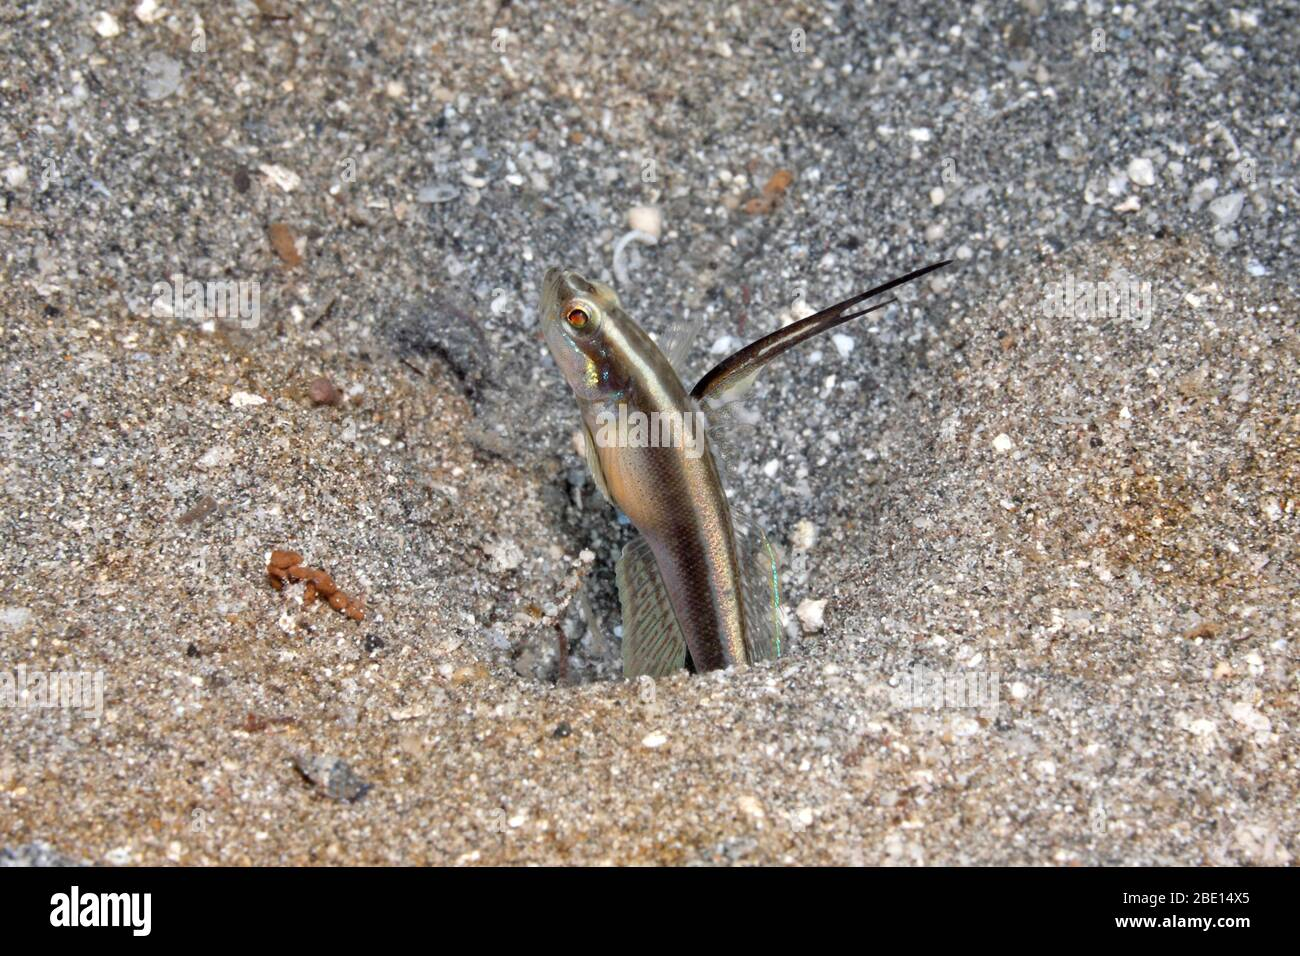 lachners-shrimpgoby-also-known-as-black-spear-shrimpgoby-myersina-lachneri-pemuteran-bali-indonesia-bali-sea-indian-ocean-2BE14X5.jpg